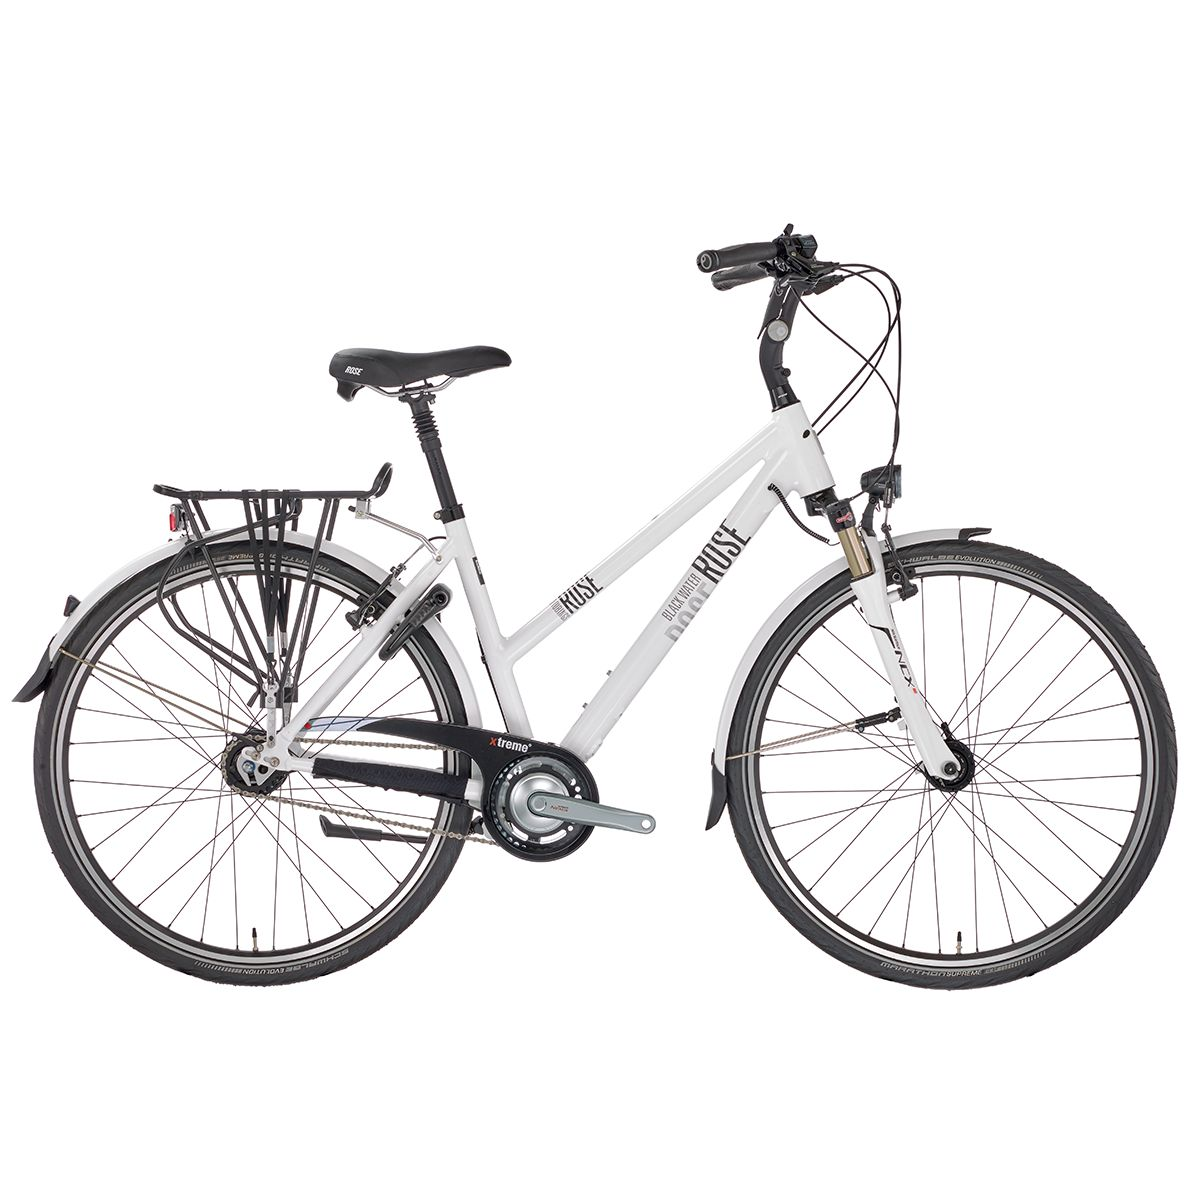 ROSE BLACK WATER 2 Unisex showroom bike | City